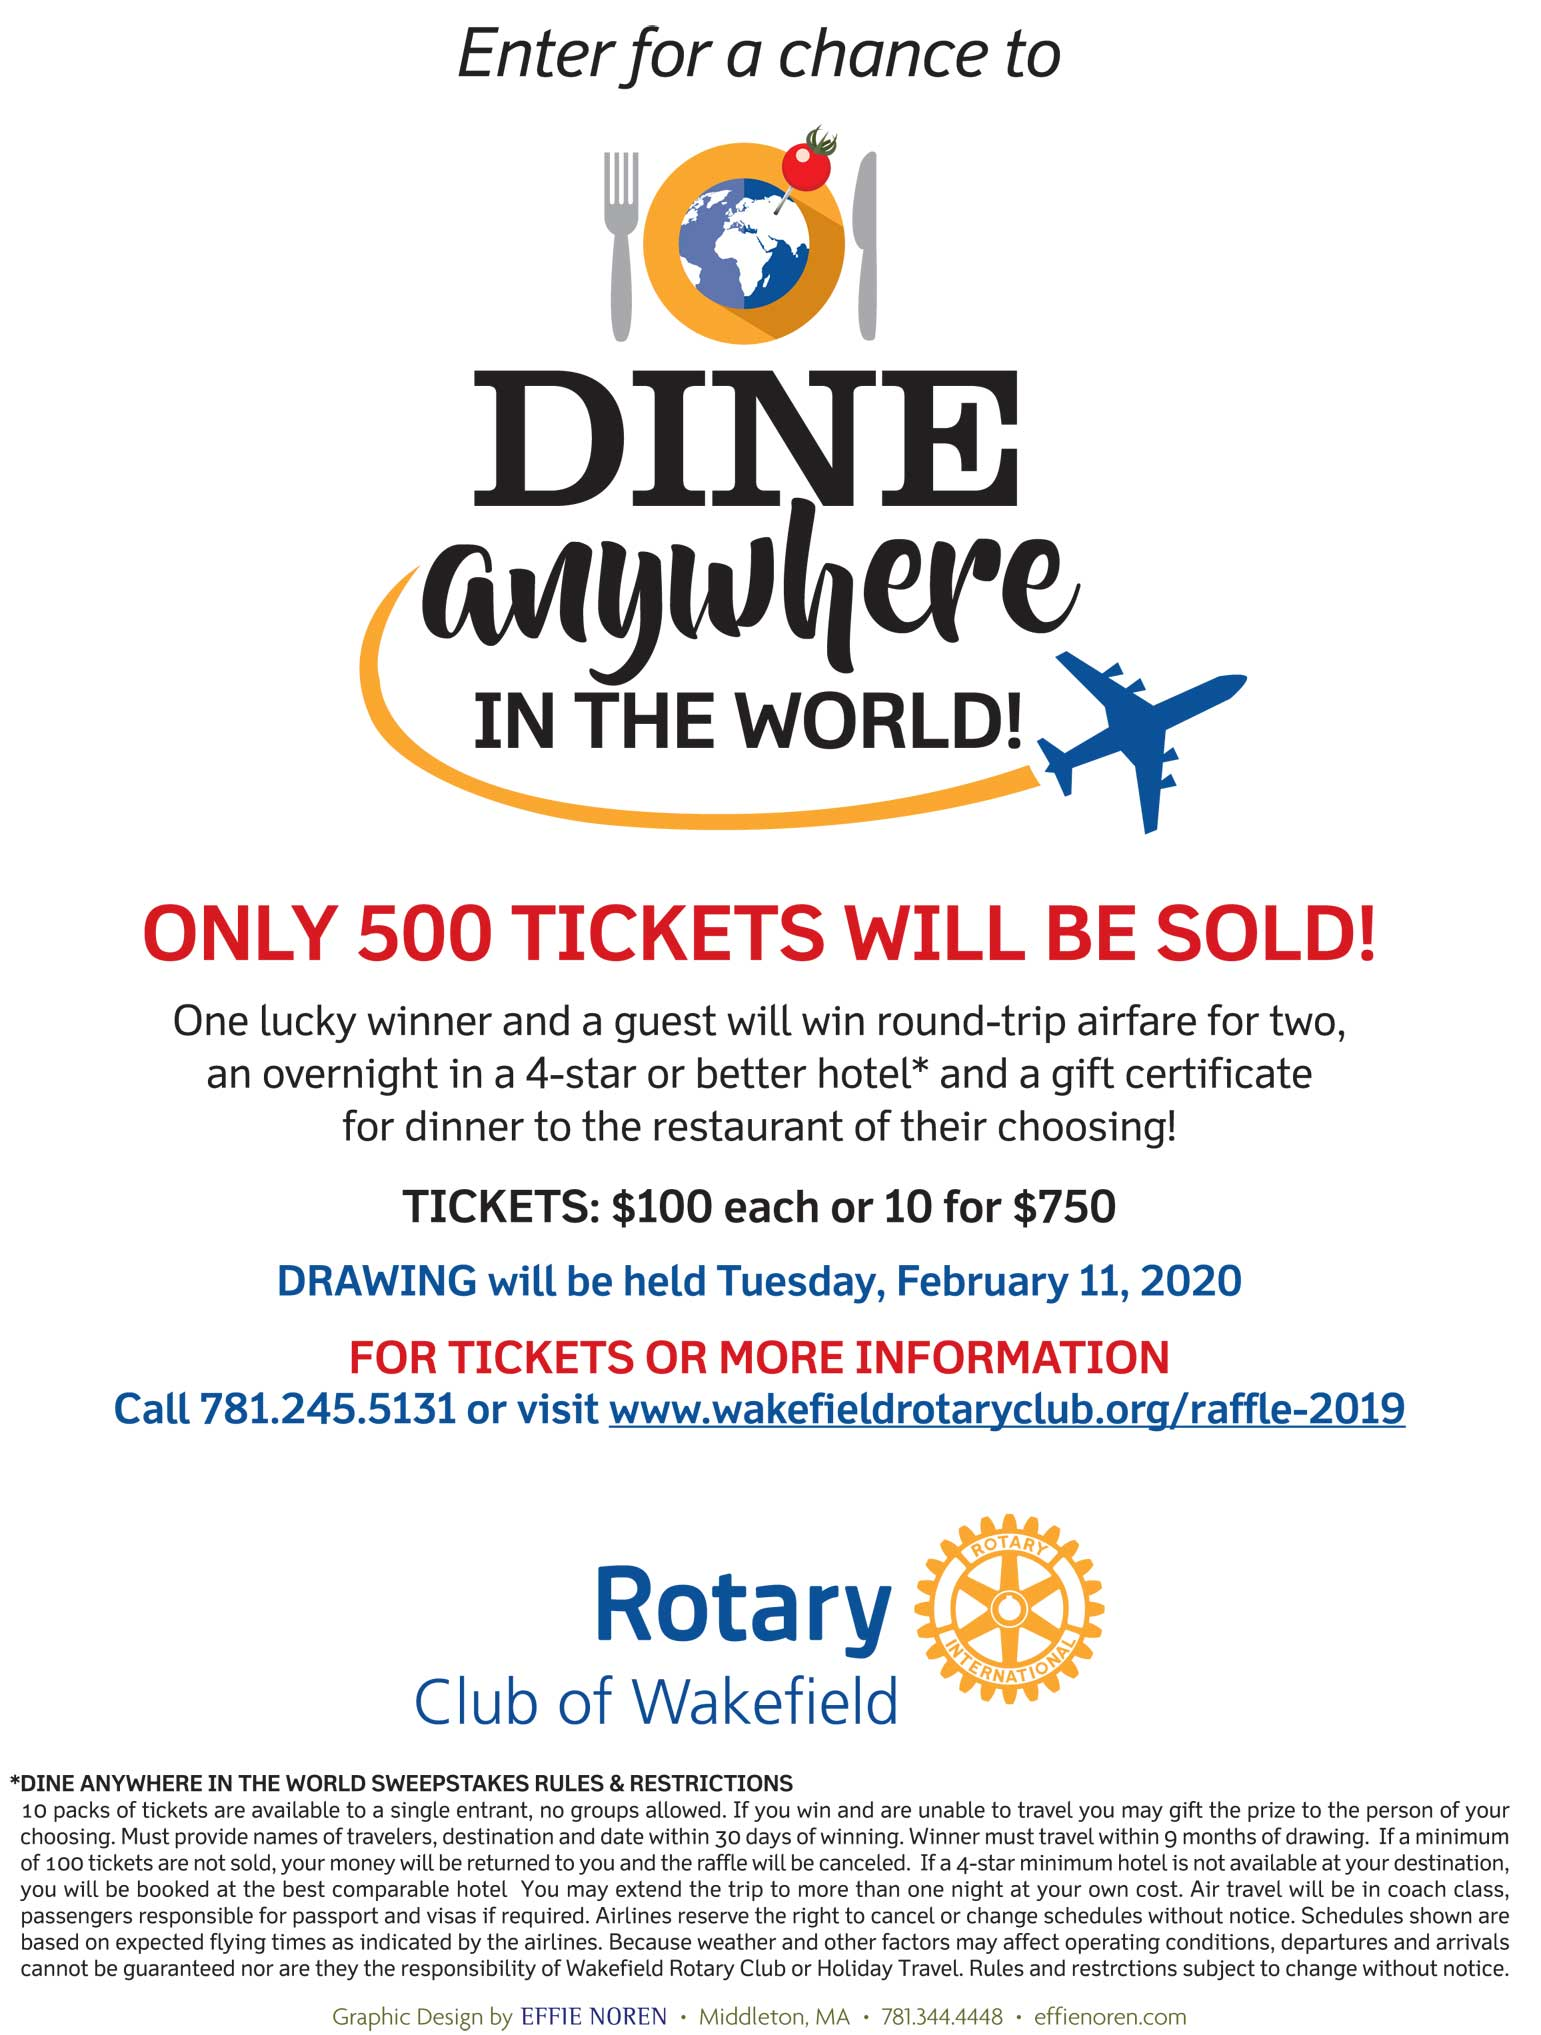 DINE ANYWHERE IN THE WORLD SWEEPSTAKES